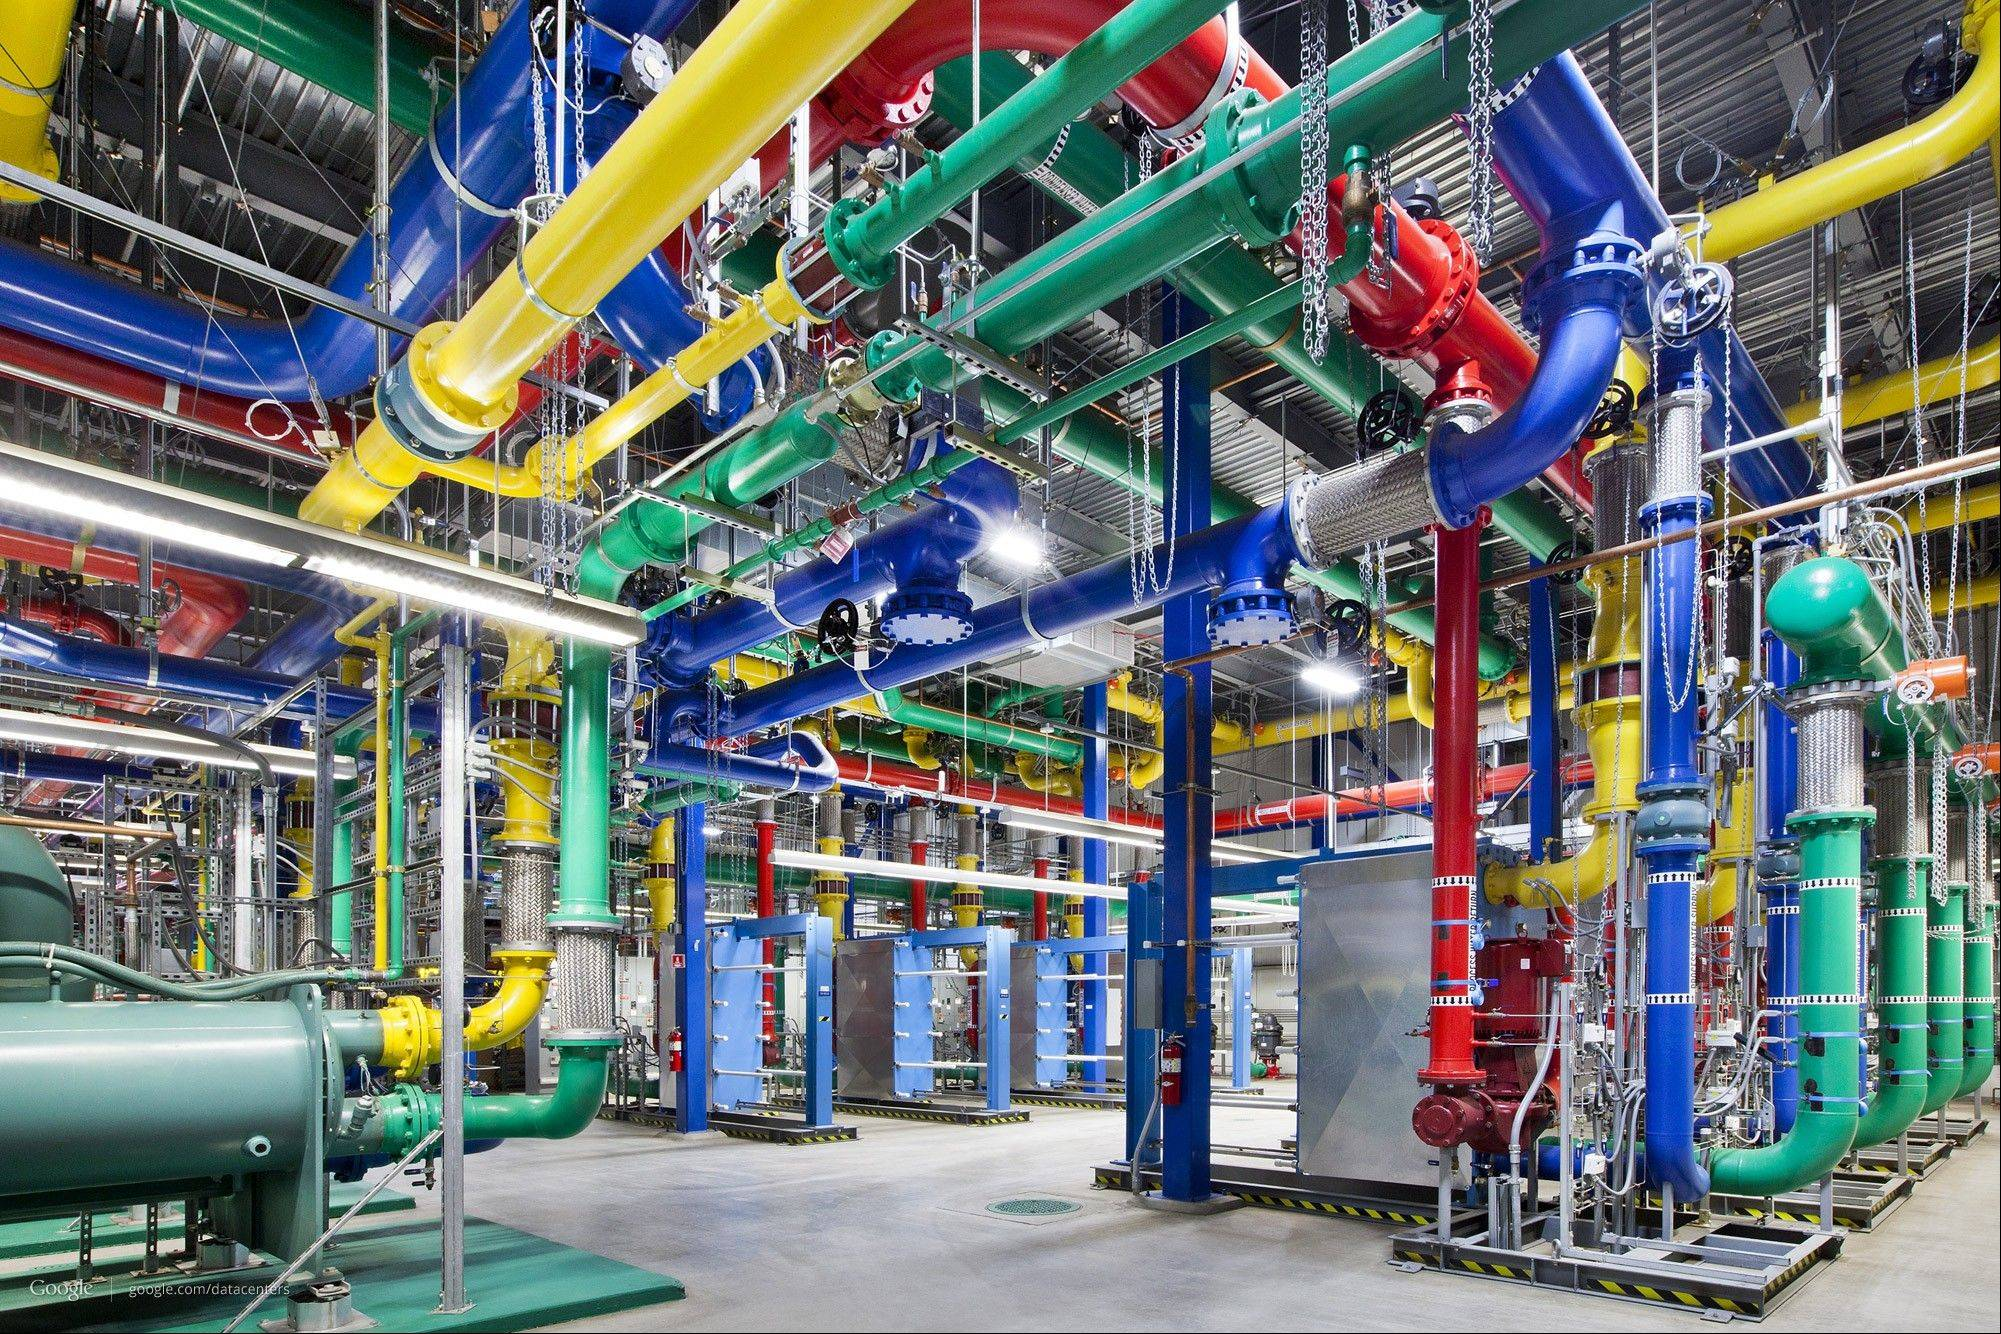 Colorful pipes network to send and receive water for cooling Google�s data center in The Dalles, Ore.